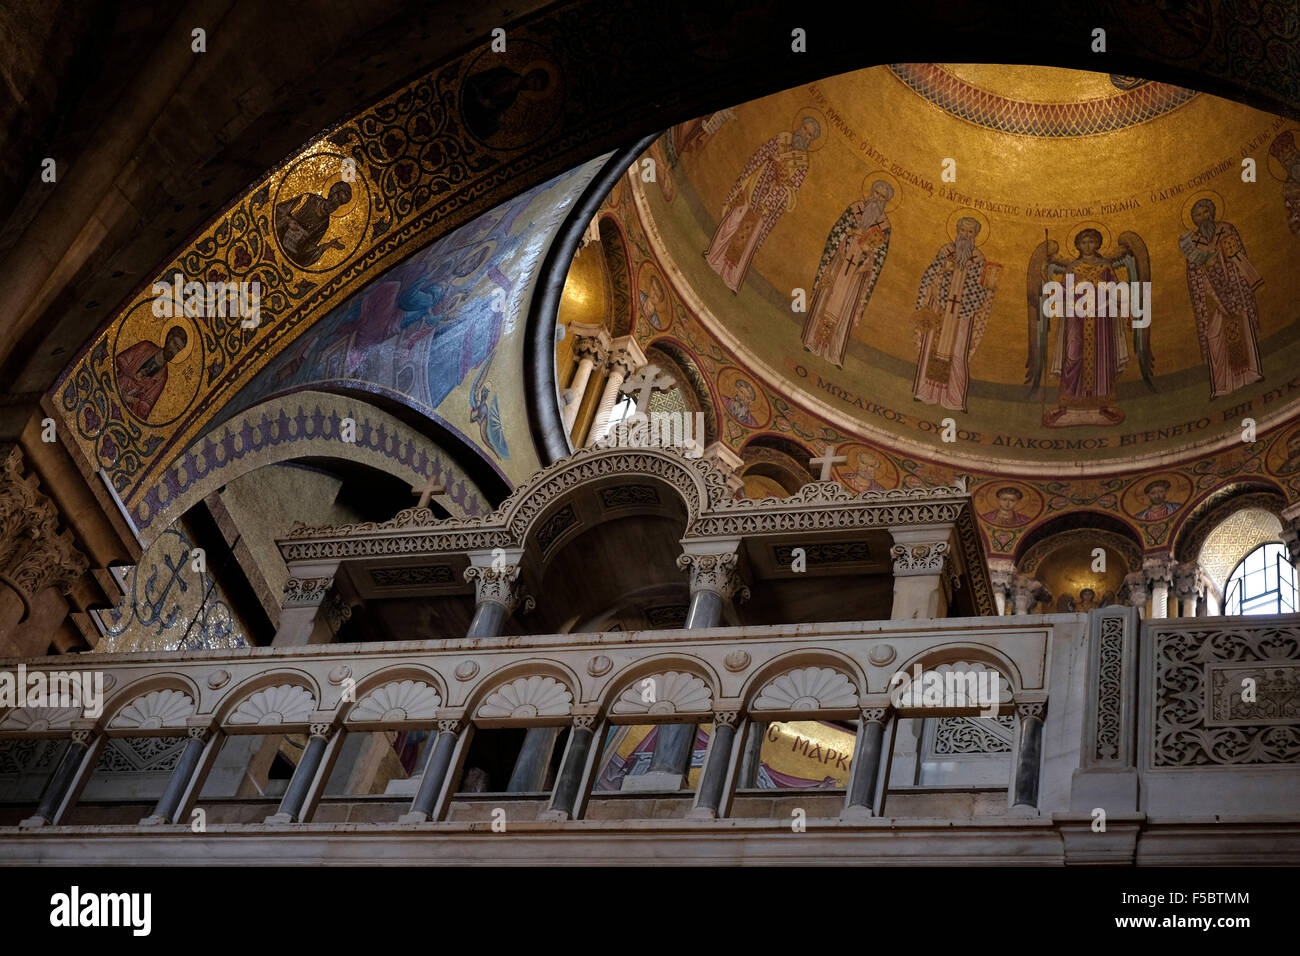 Upward view of the dome of the Catholicum or Catholicon chamber at the the Church of Holy Sepulchre in the Christian - Stock Image